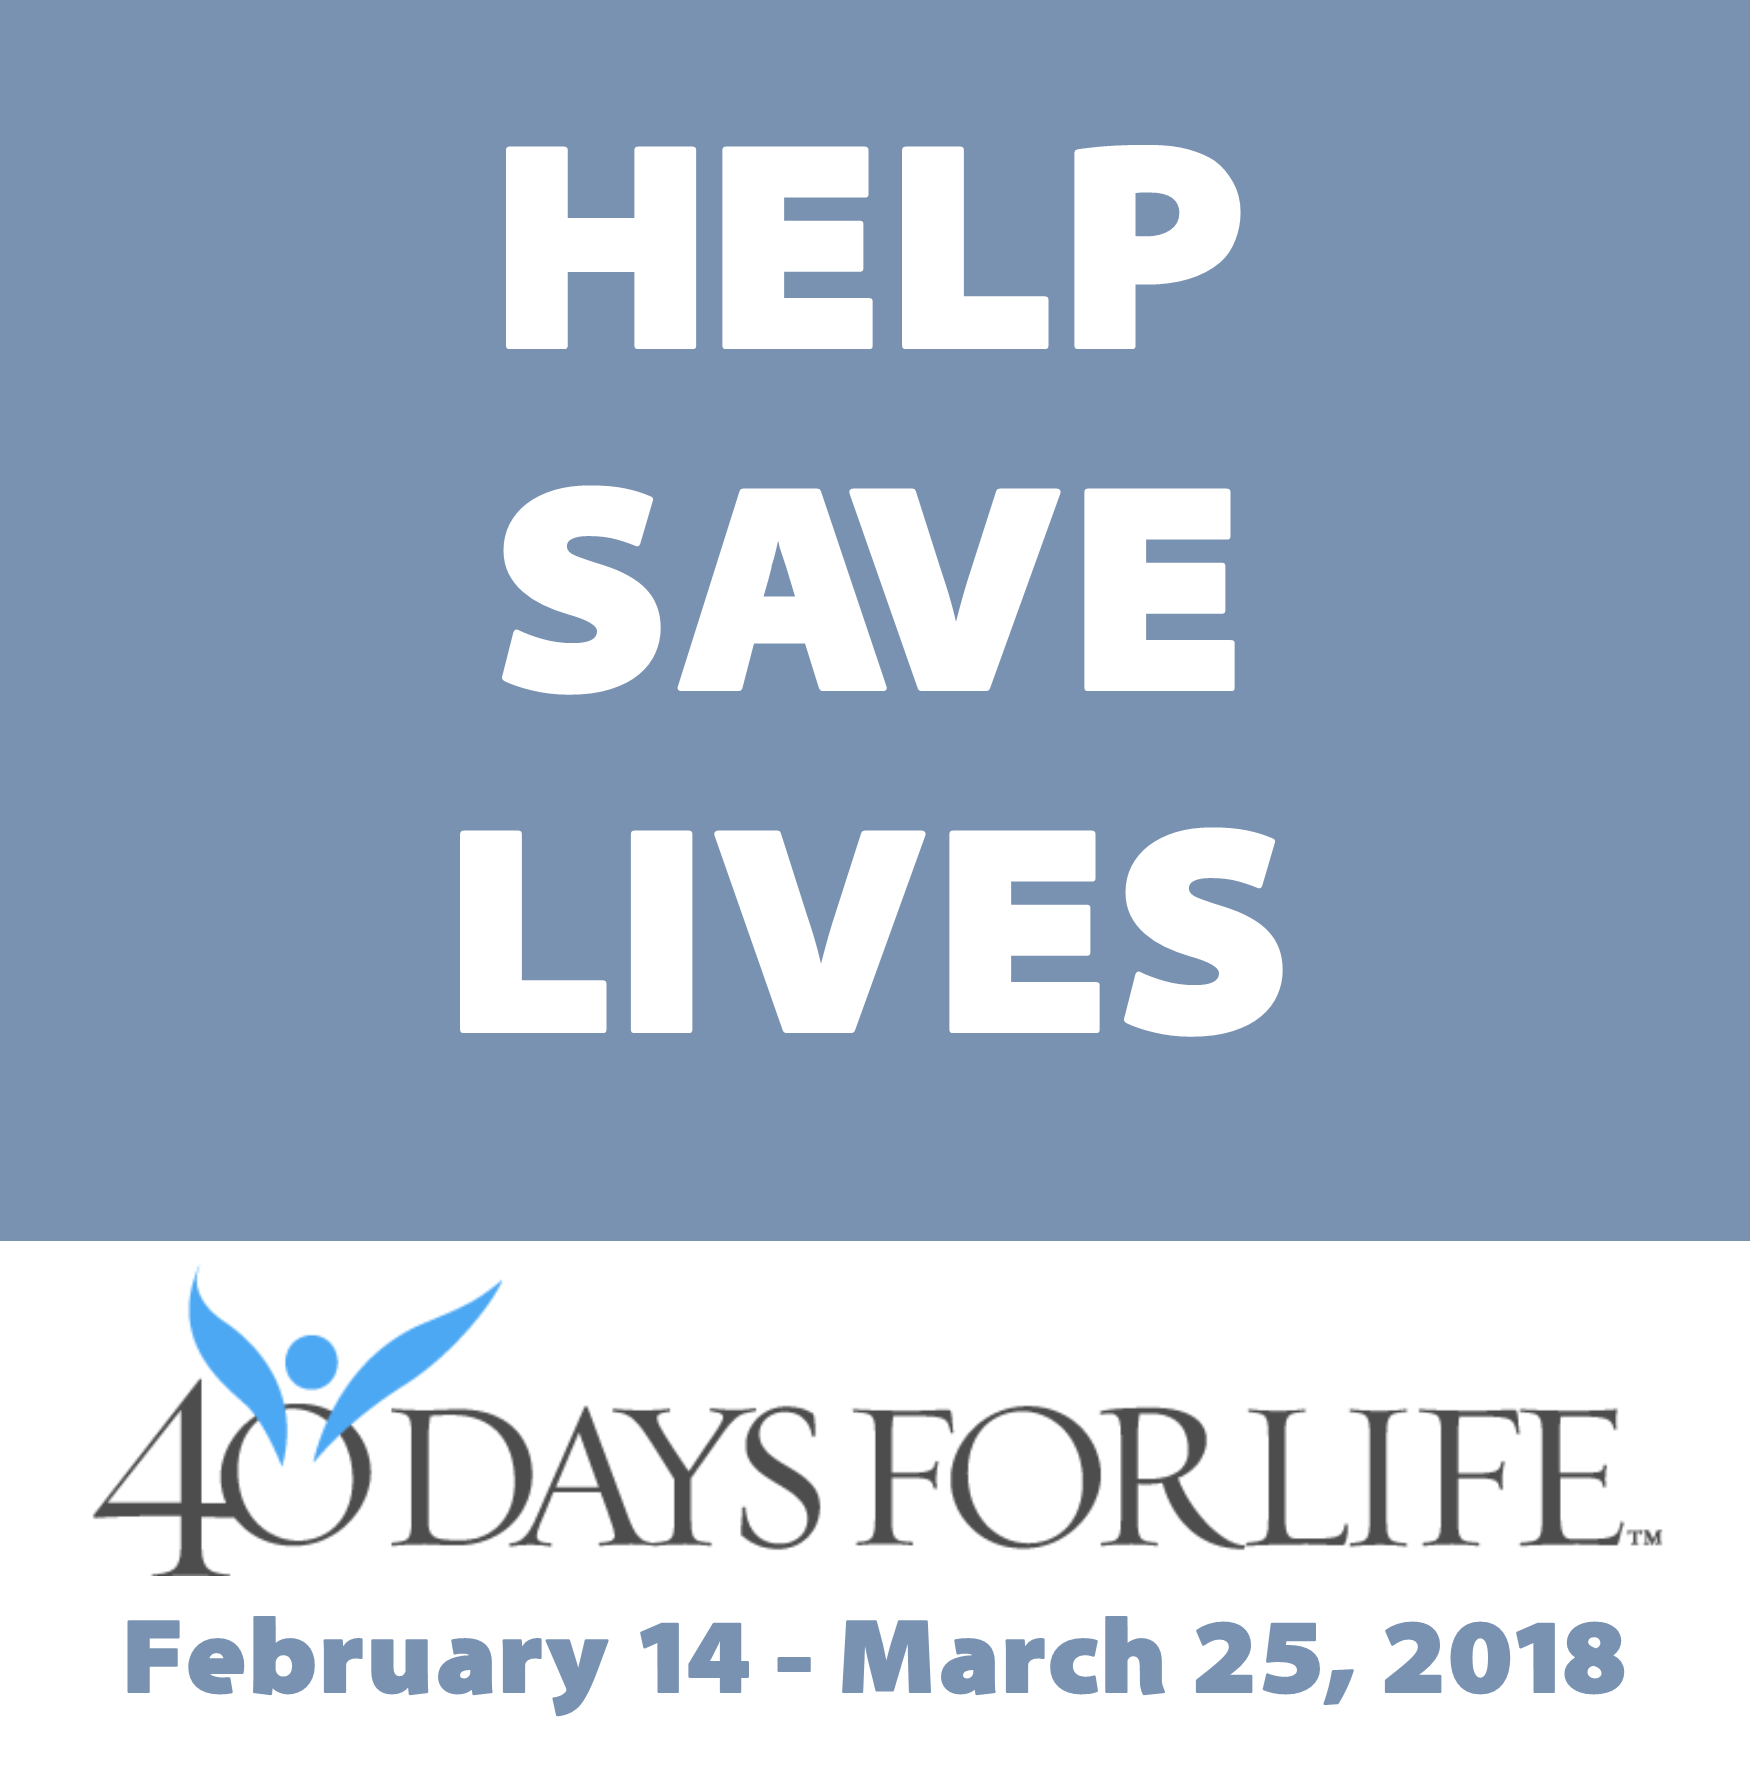 Help Save Lives 40 Days for Life February 14 to March 25 2018